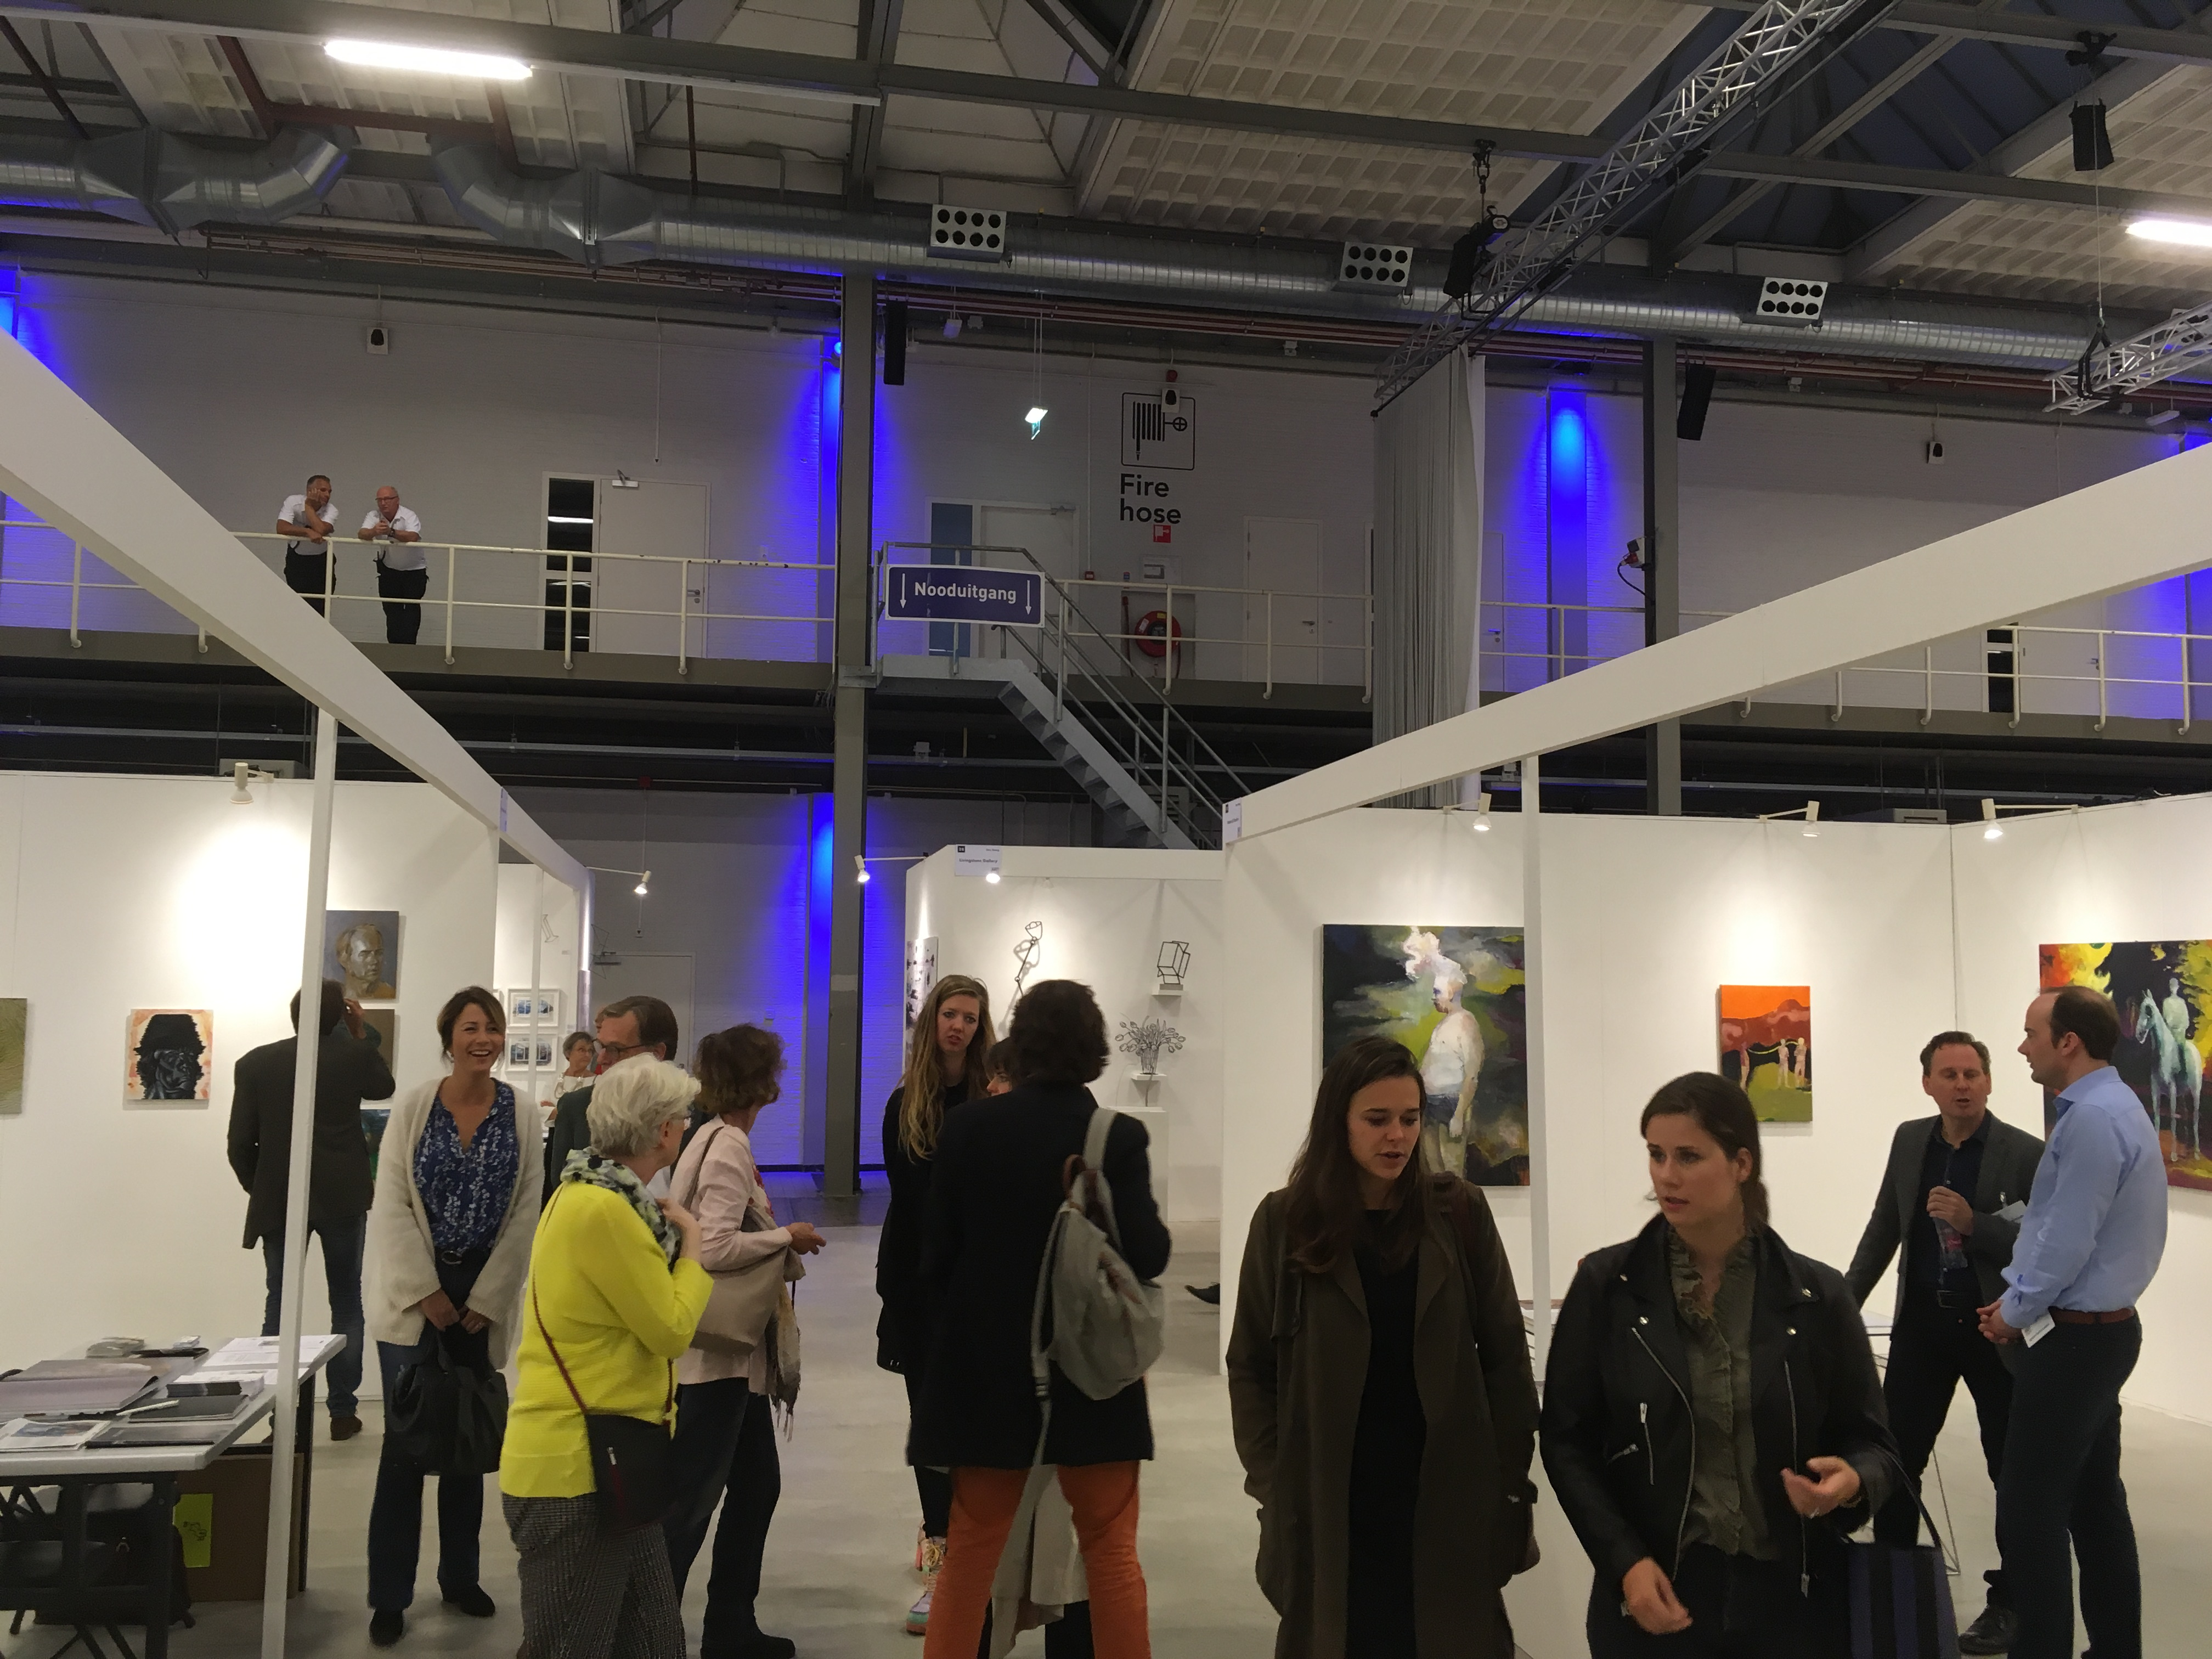 Art The Hague 2019: these are the highlights from the program